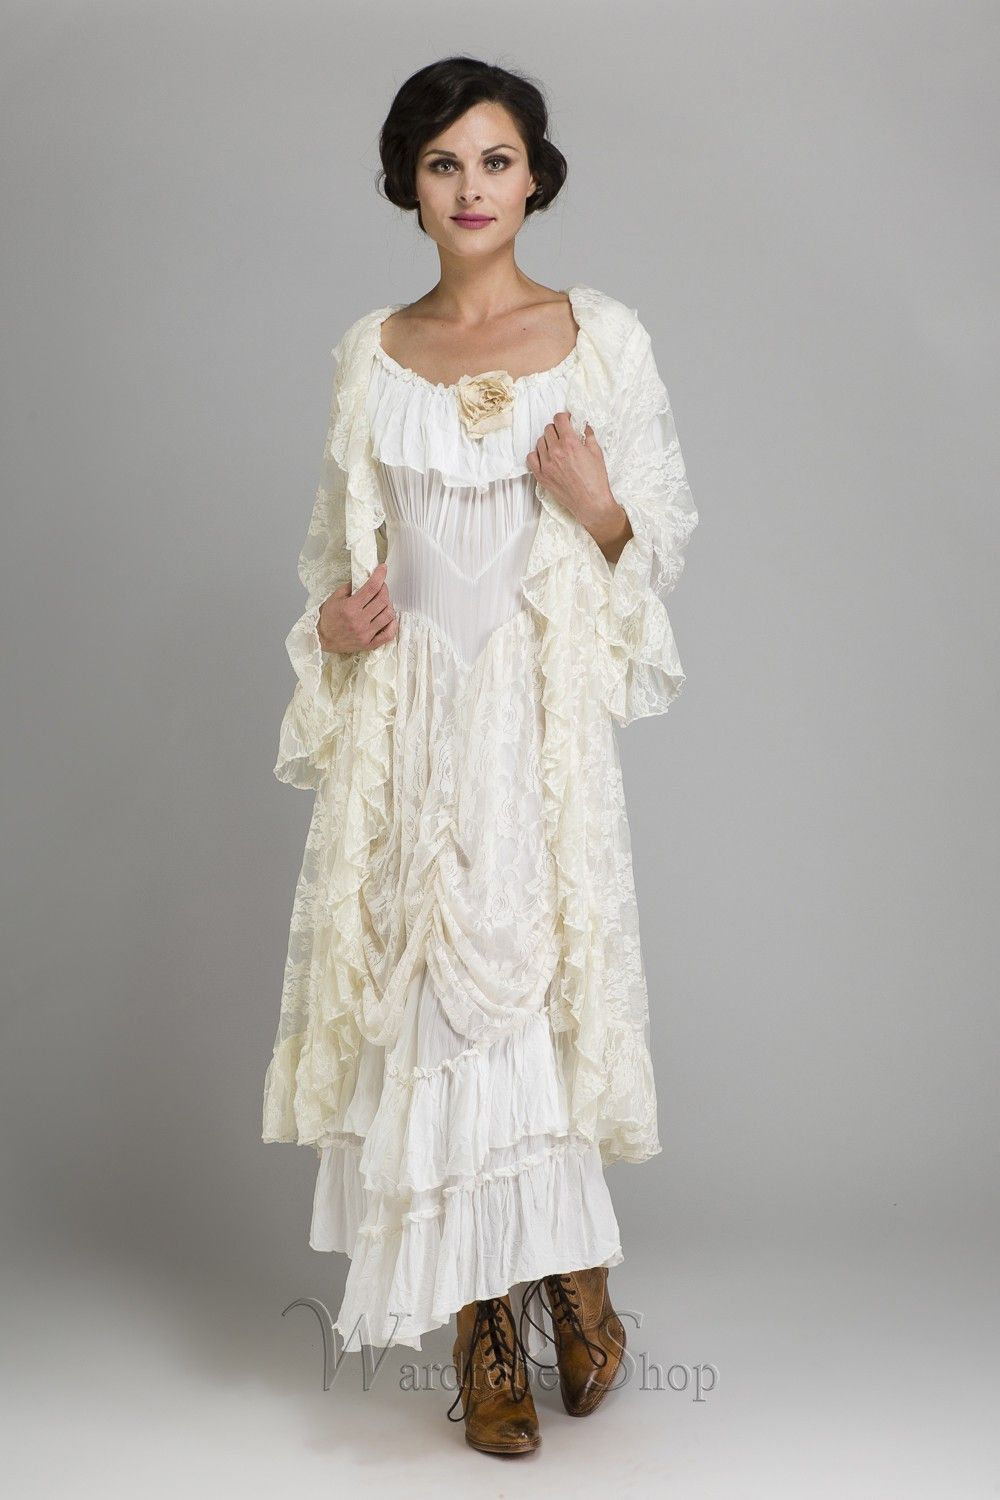 Cowgirl ruffled western wedding dress by marrika nakk pinterest